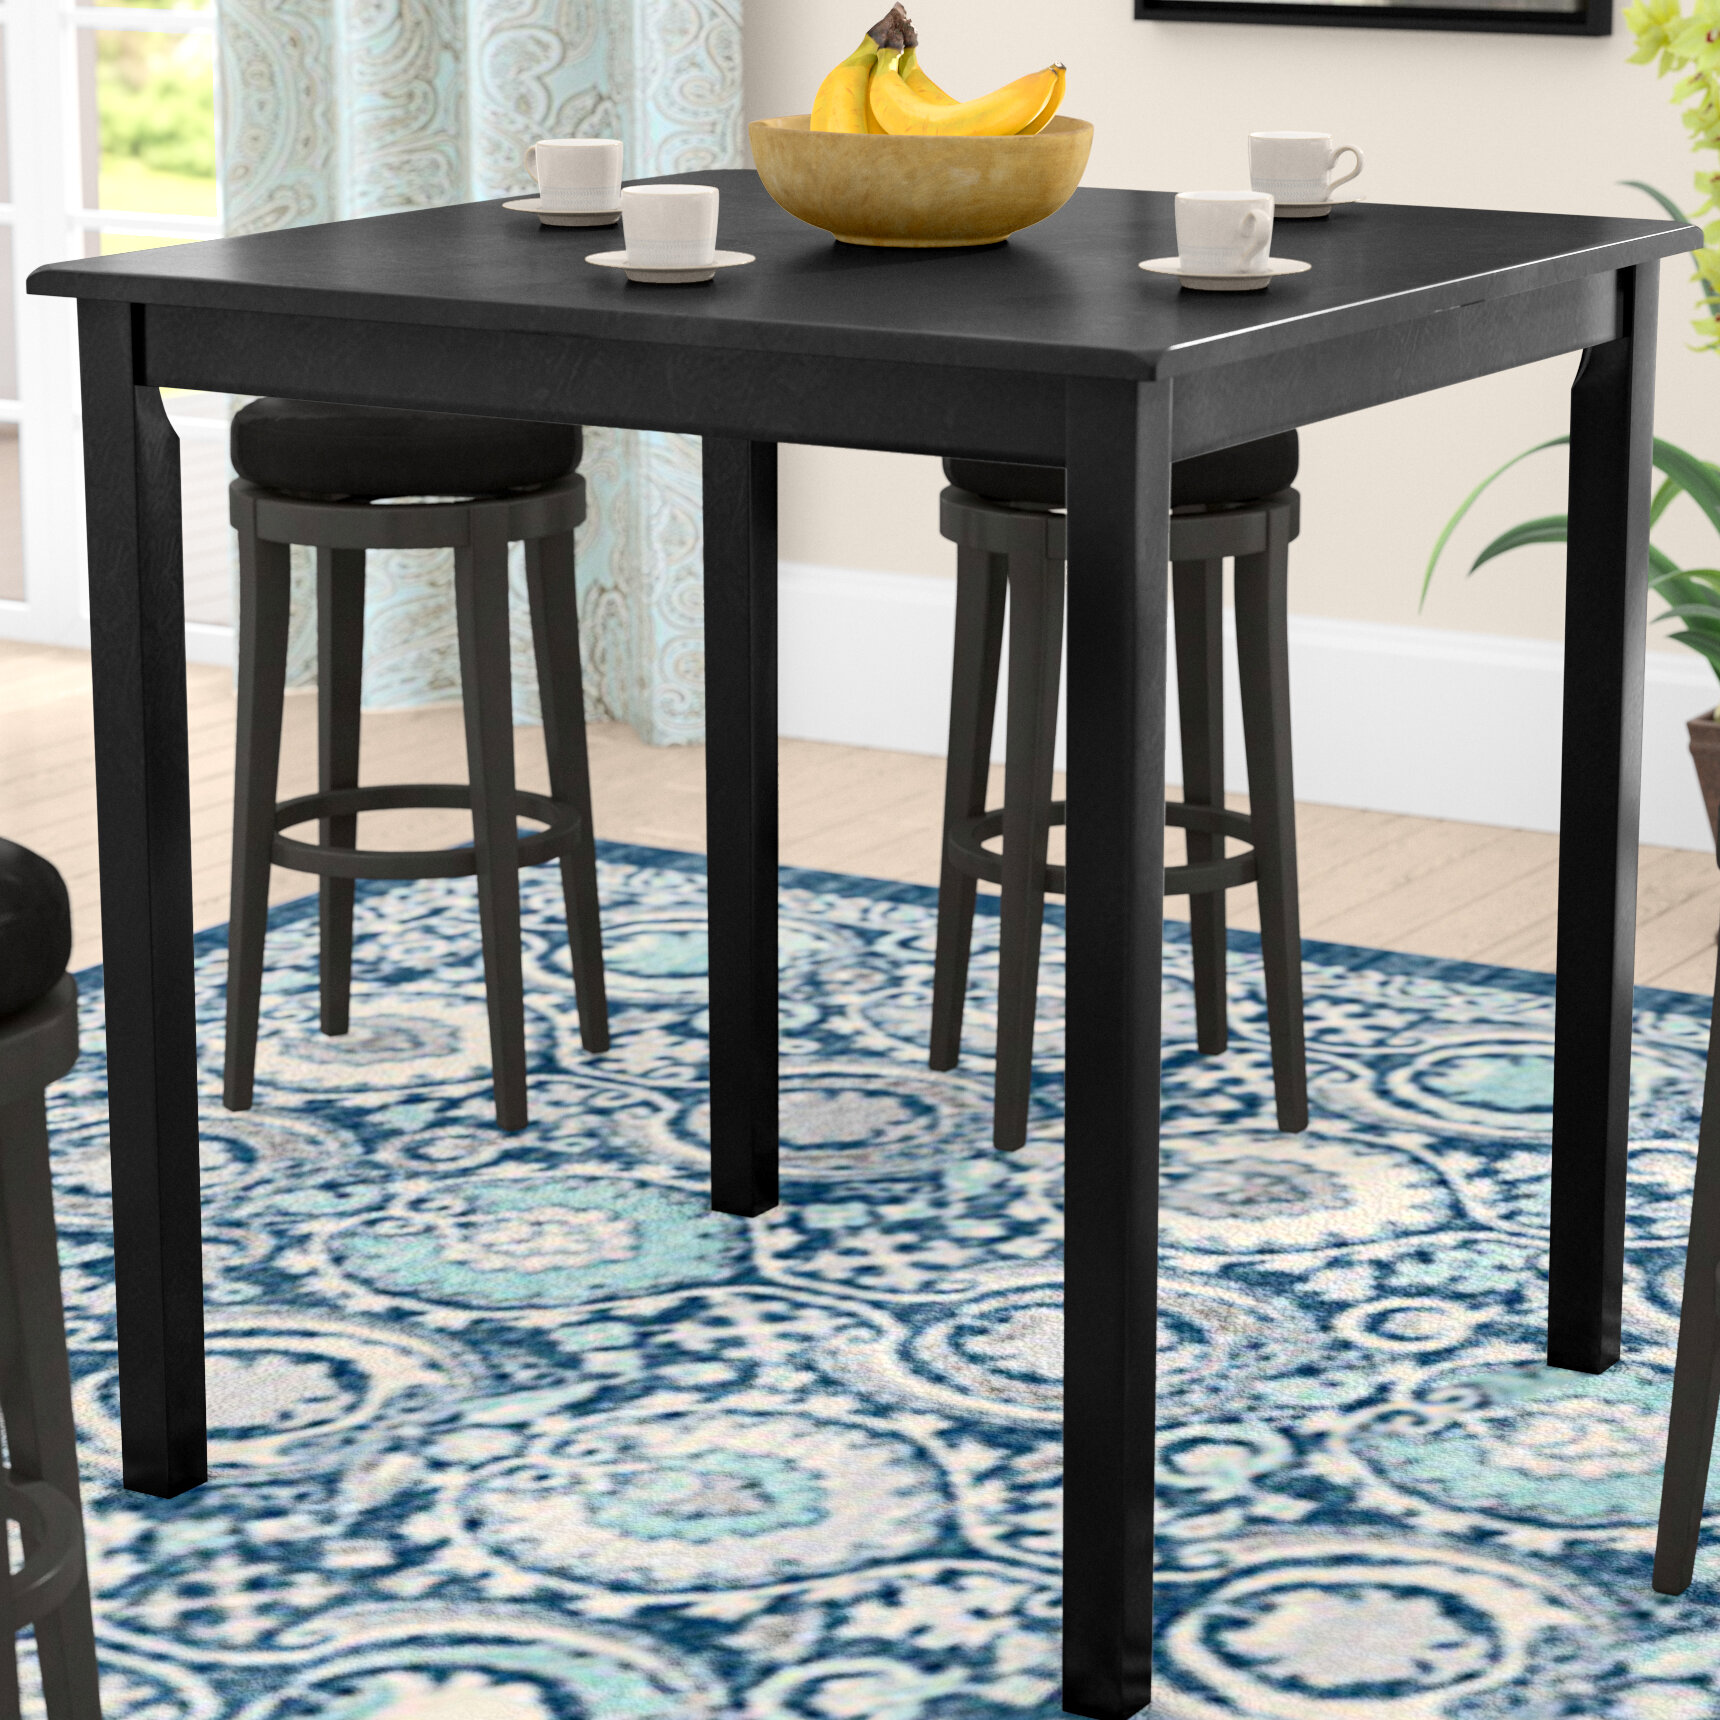 Andover Mills Whitworth Counter Height Dining Table & Reviews | Wayfair